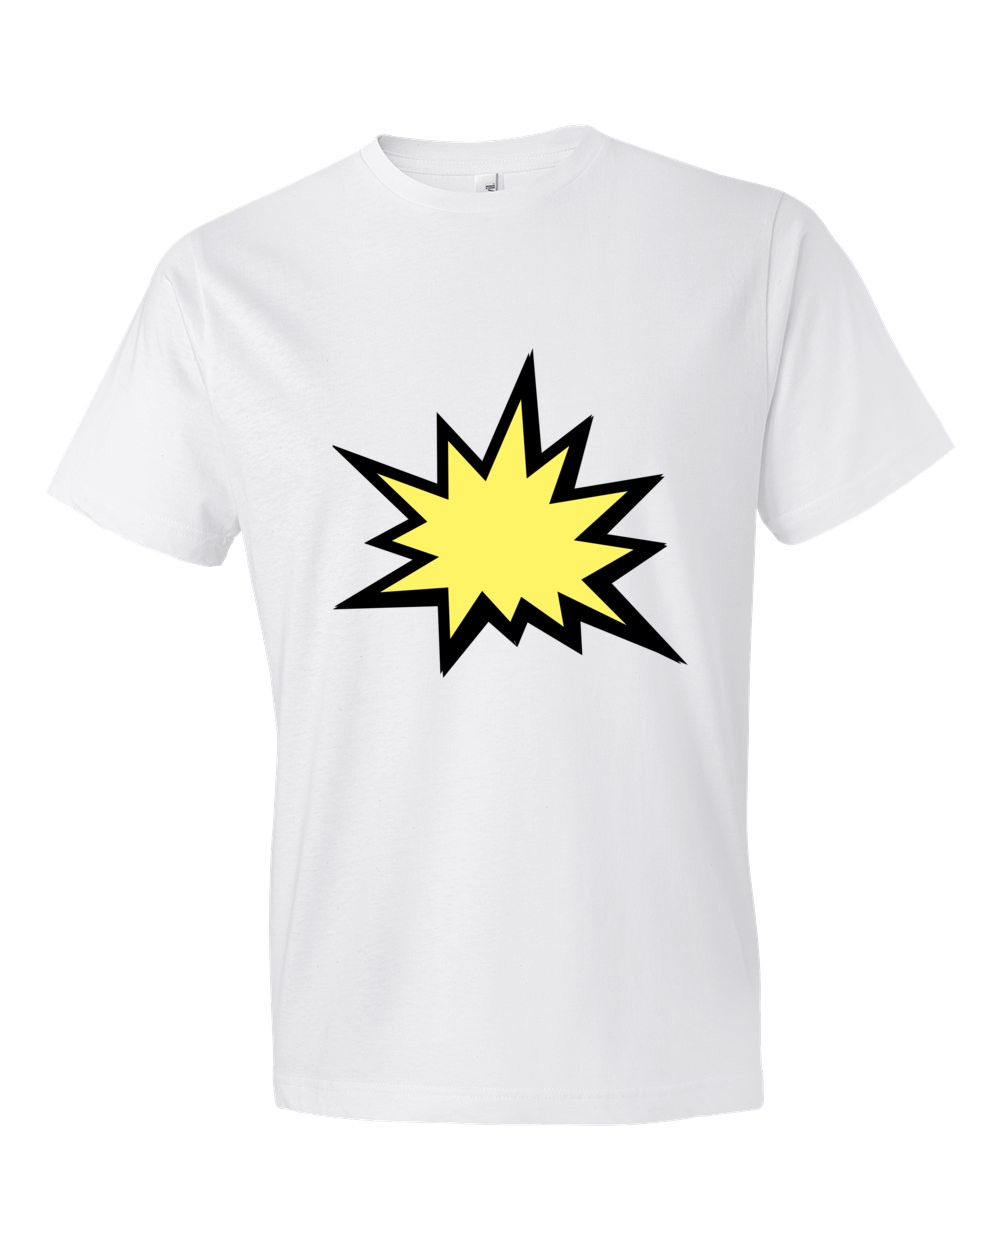 Explosion-Lightweight-Fashion-Short-Sleeve-T-Shirt-by-iTEE.com